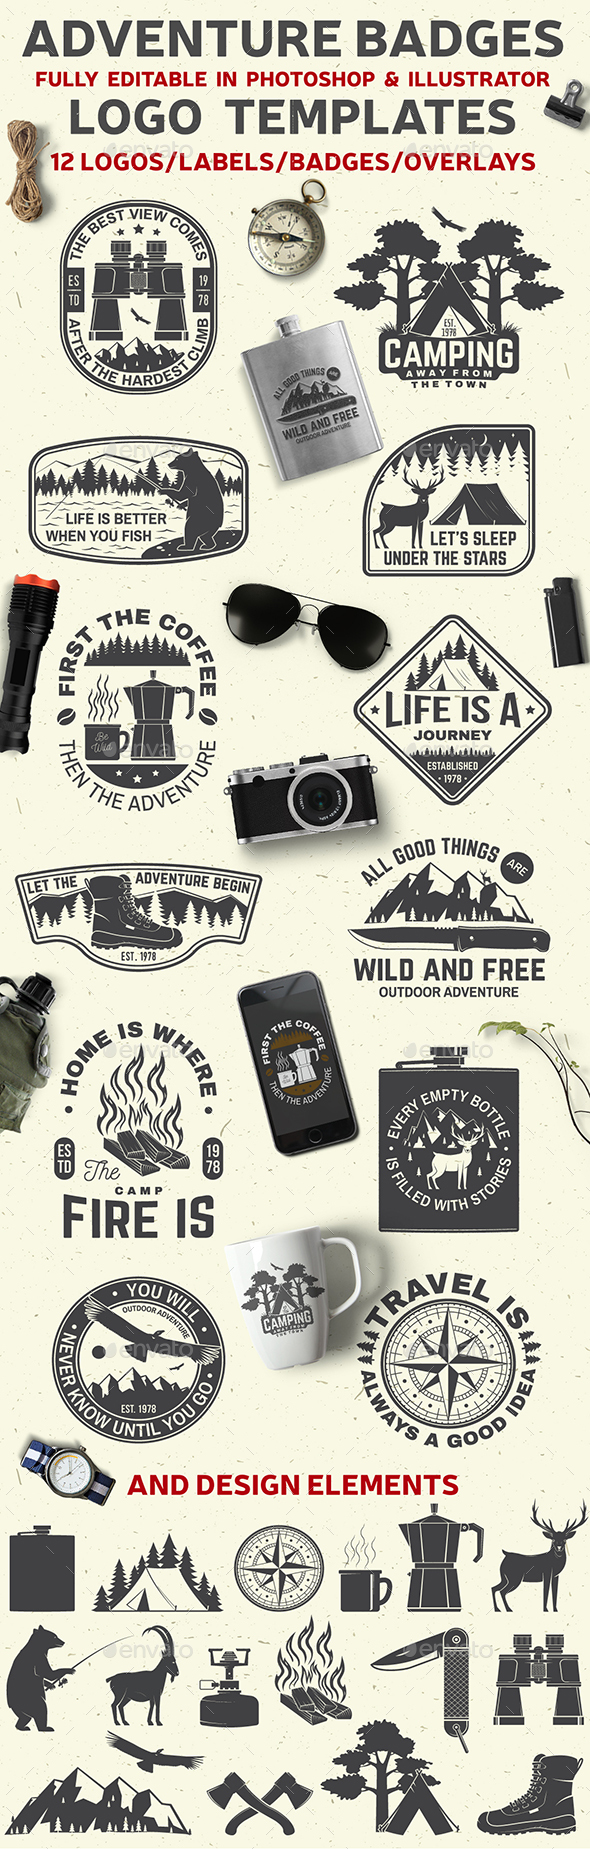 Adventure Badges With Inspirational Quotes